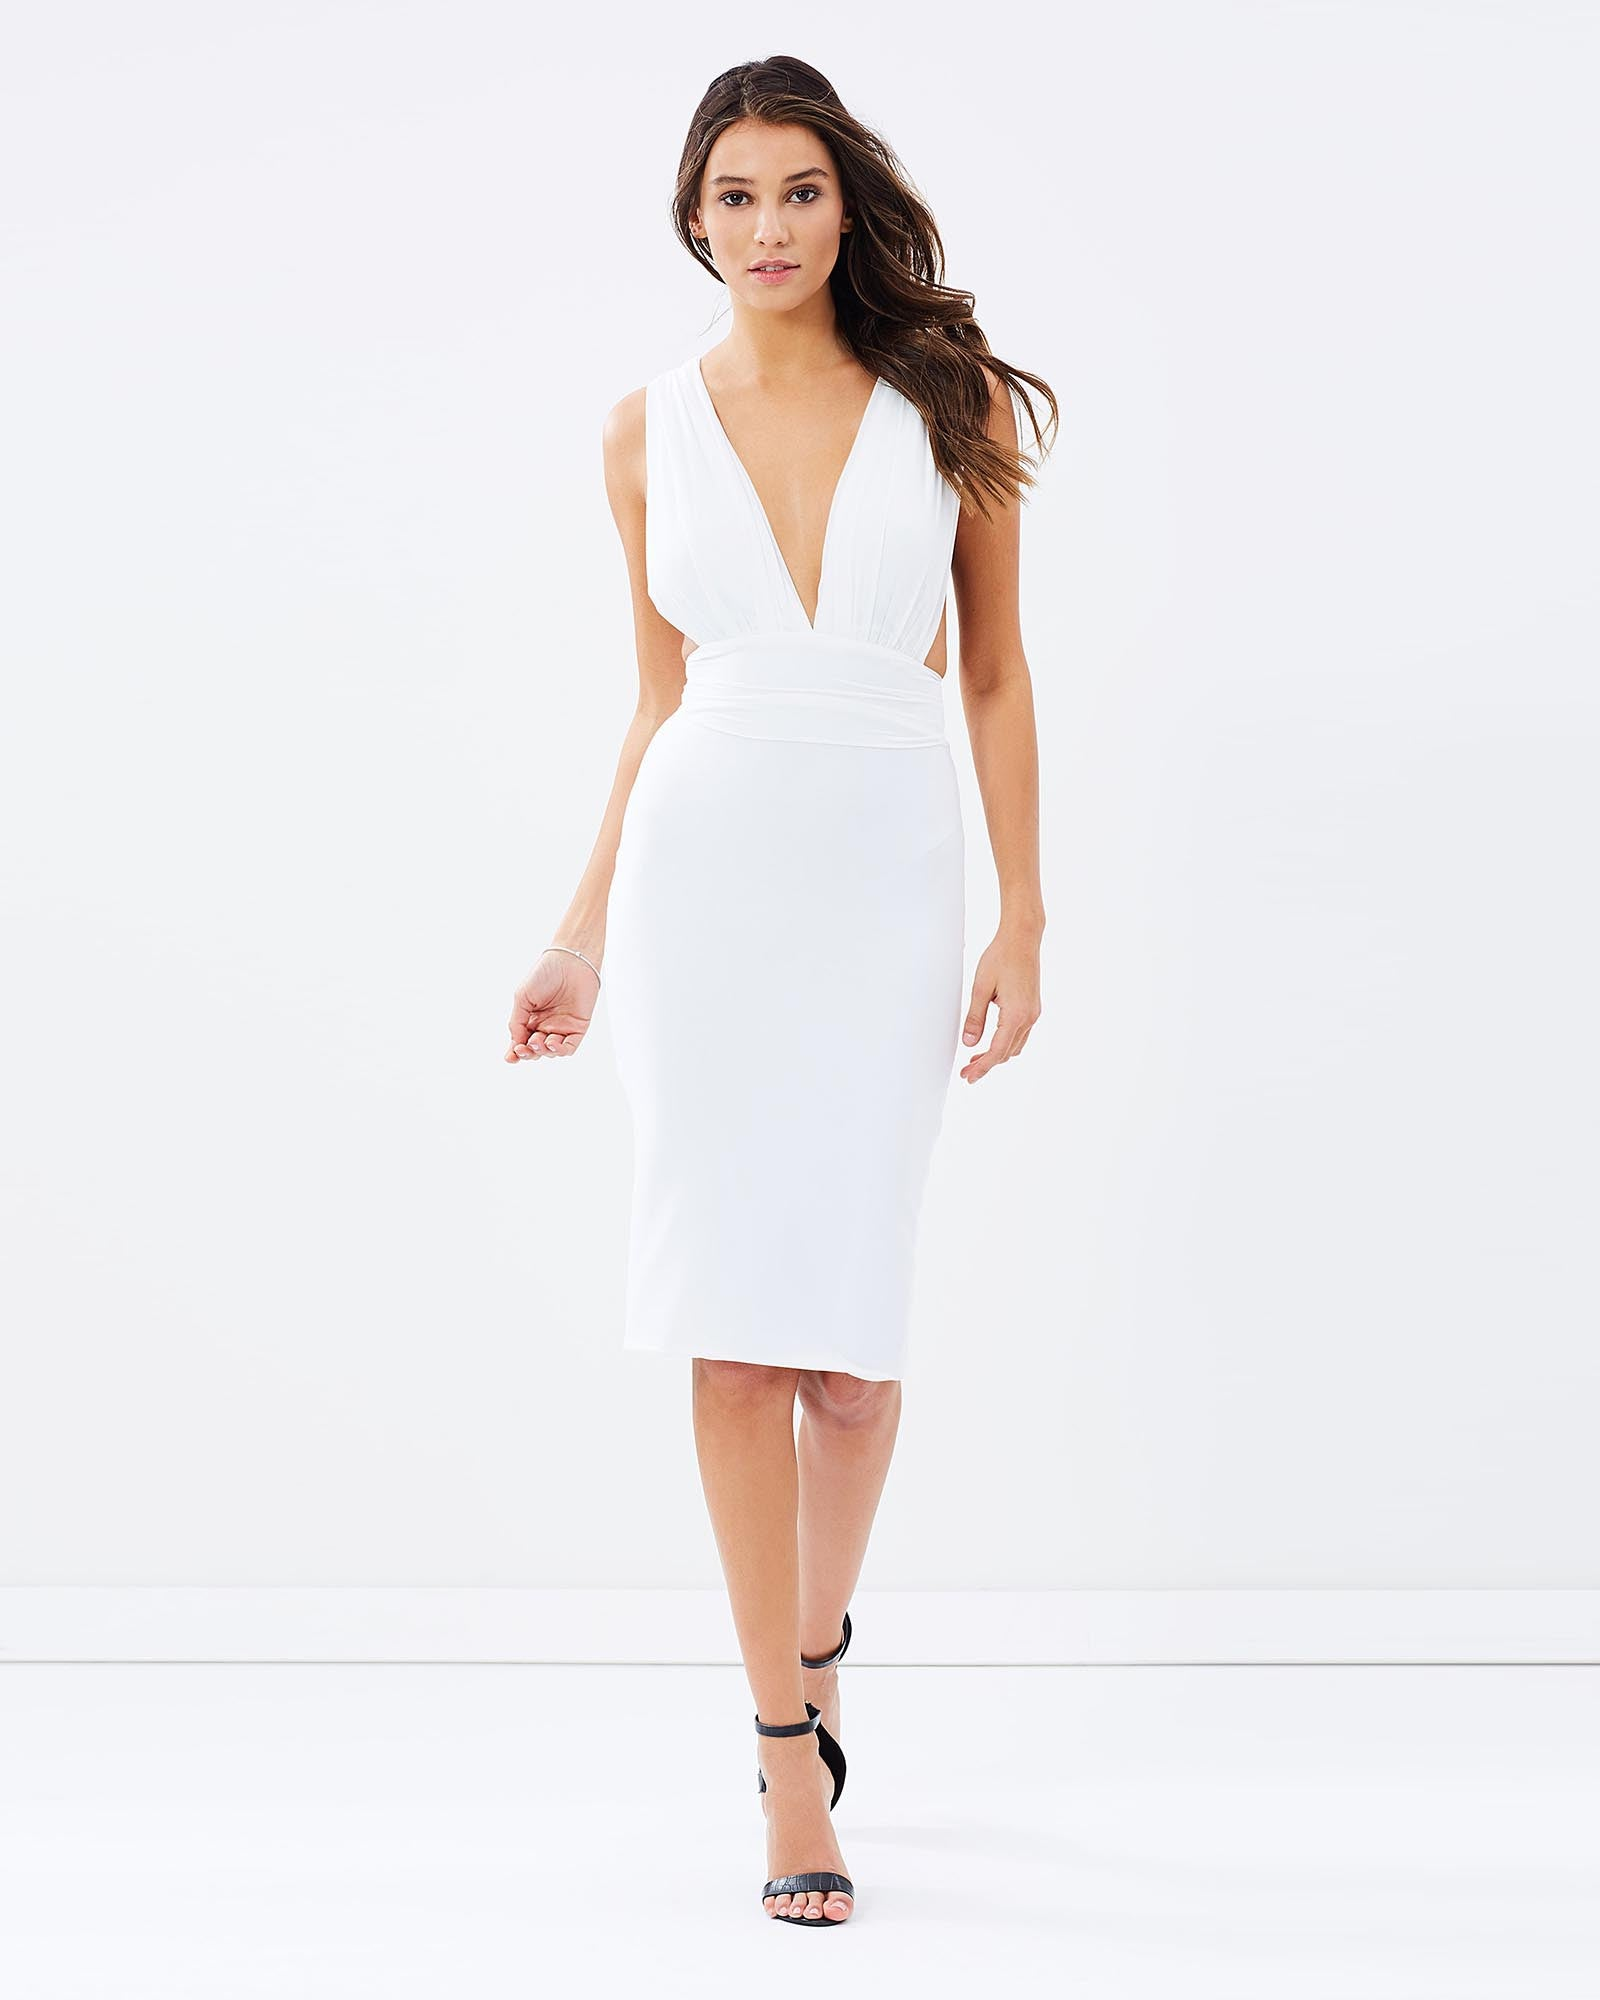 SKIVA cocktail dress white stretch fabric v neck open back shoulder straps zip pull on knee length midi party cocktail evening sexy